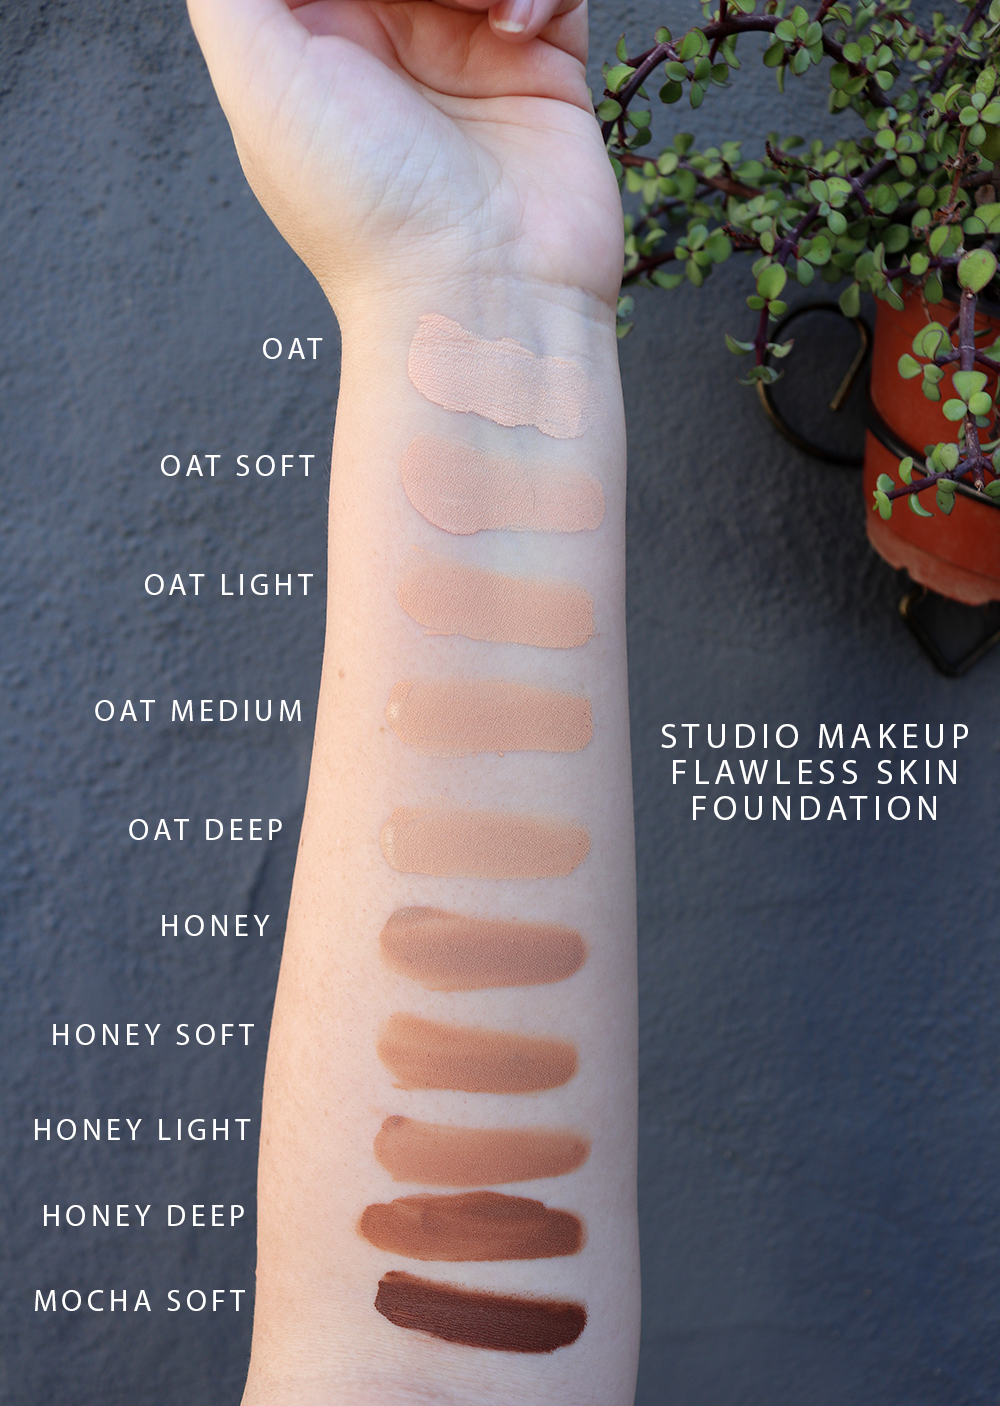 Studio Makeup Flawless Skin Foundation Swatches